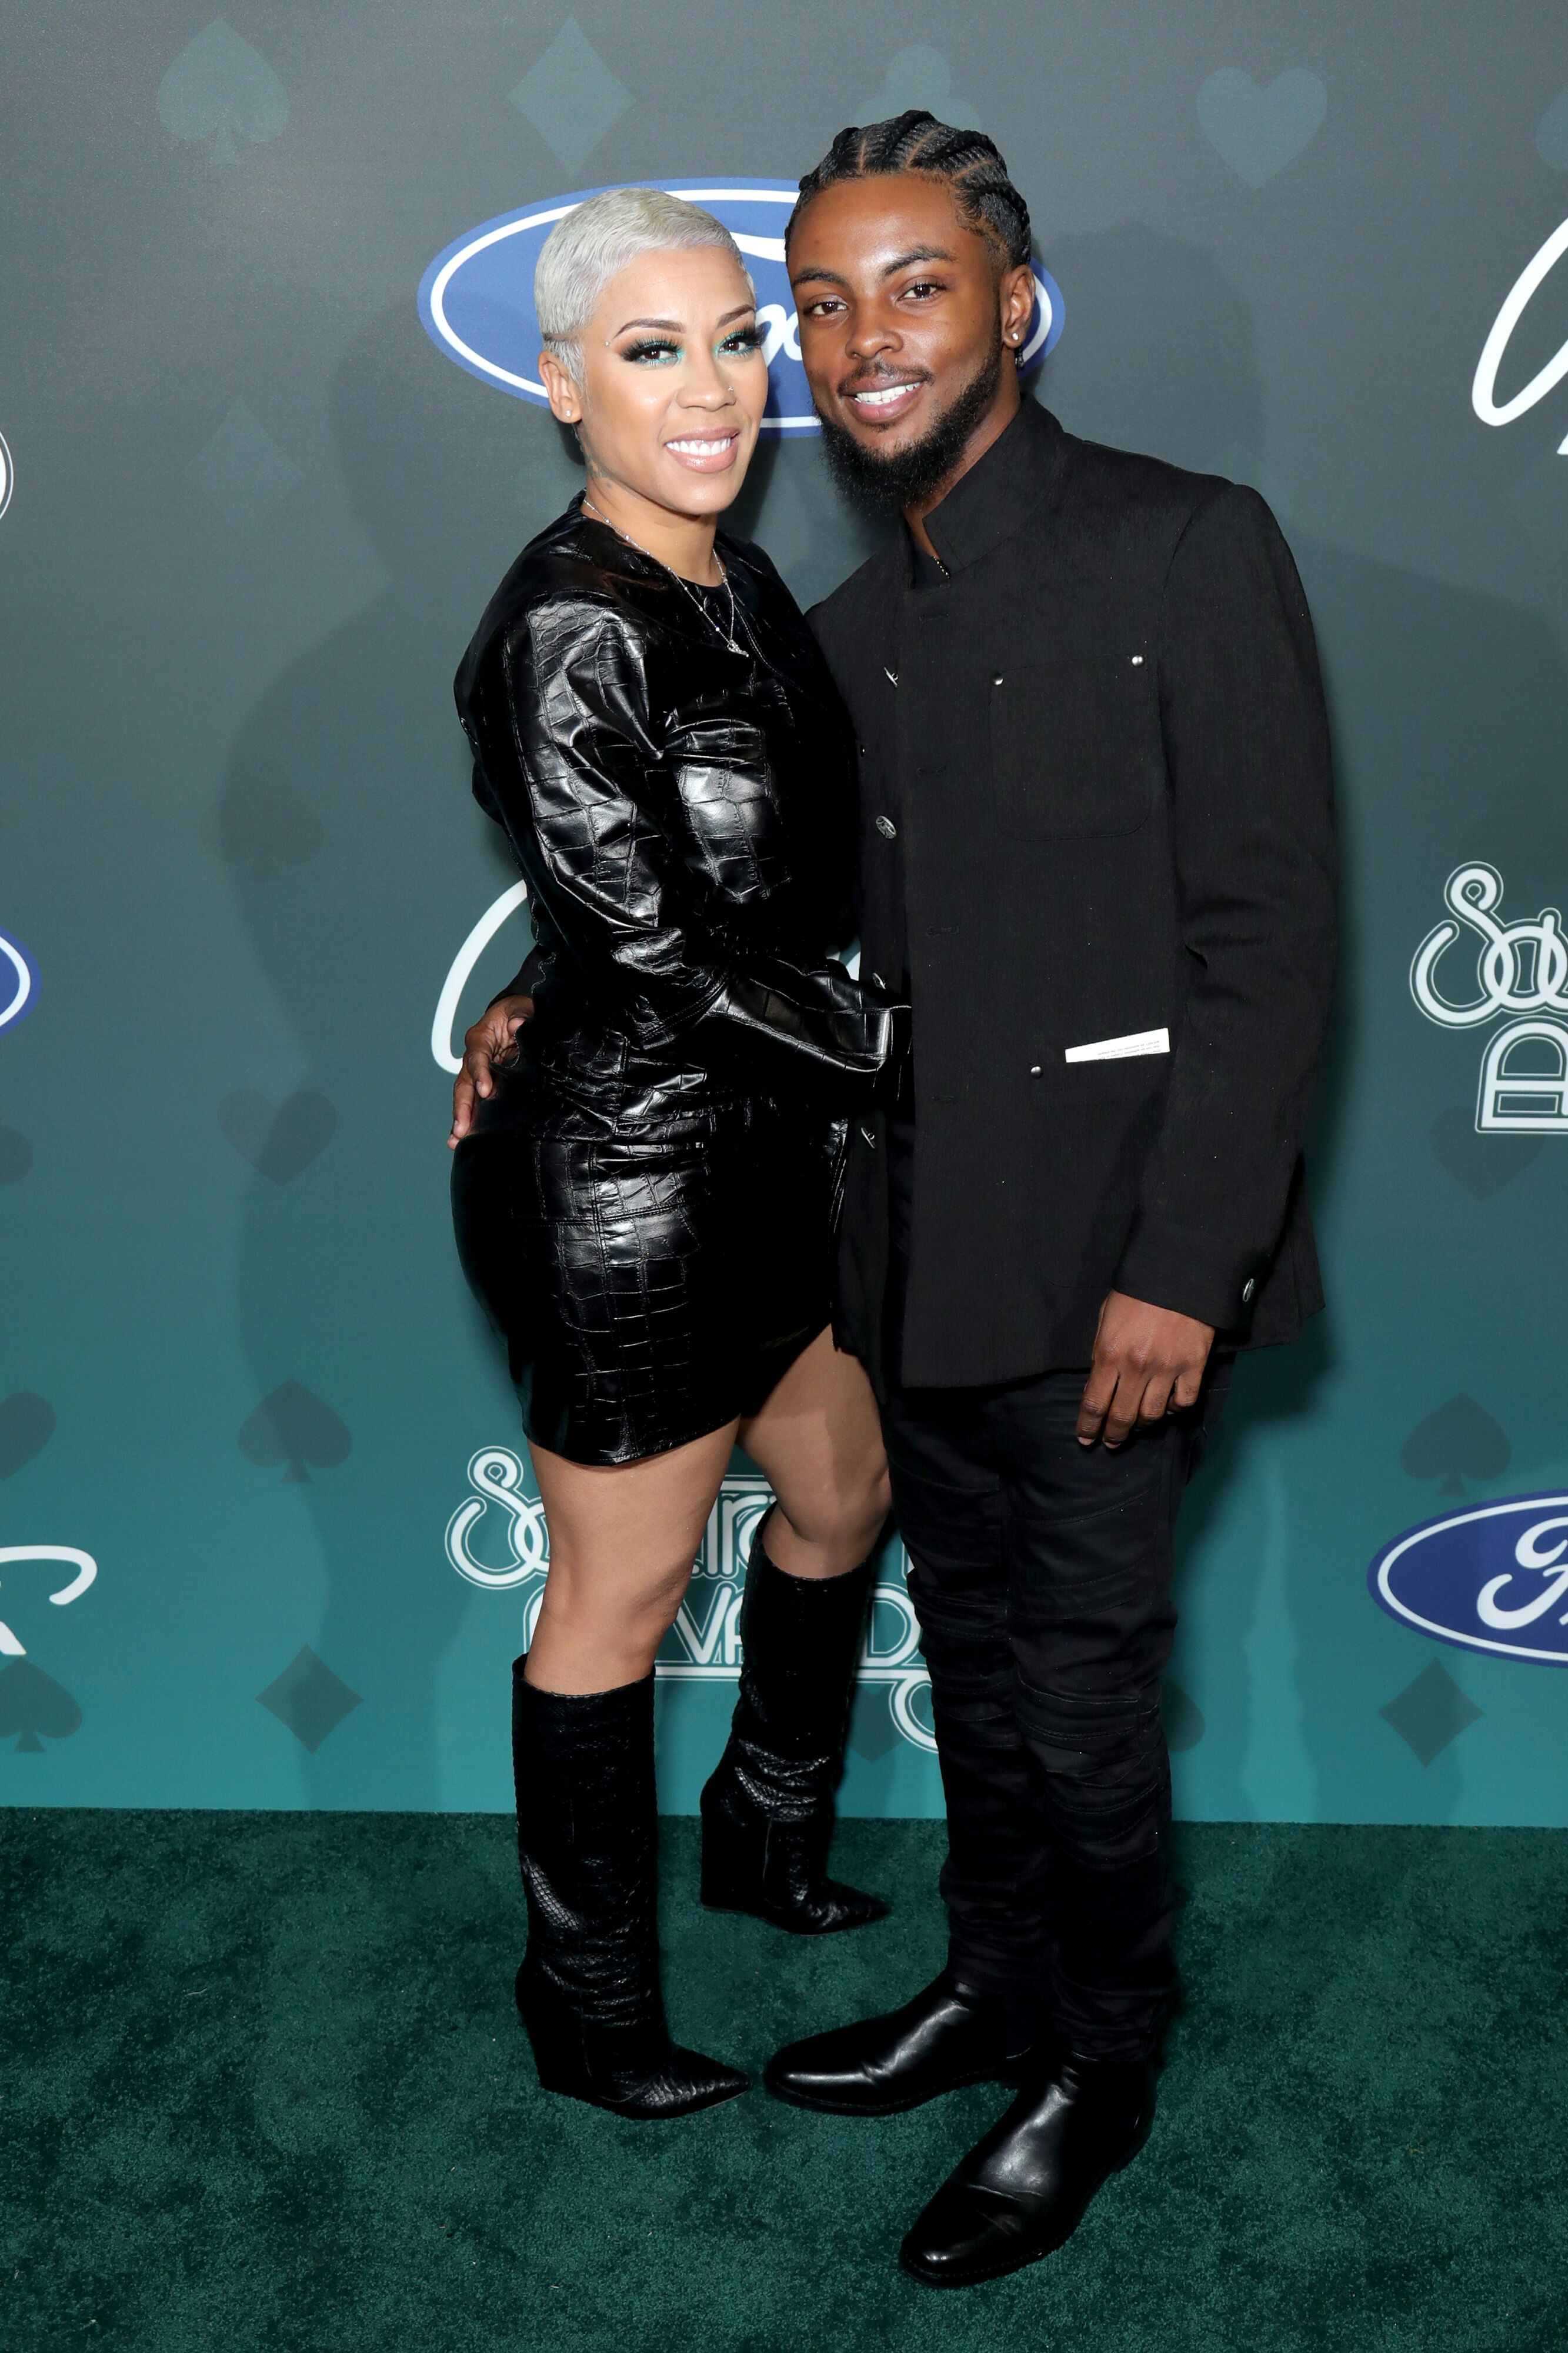 Keyshia Cole and Niko Khale attend a formal event together | Source: Getty Images/GlobalImagesUkraine